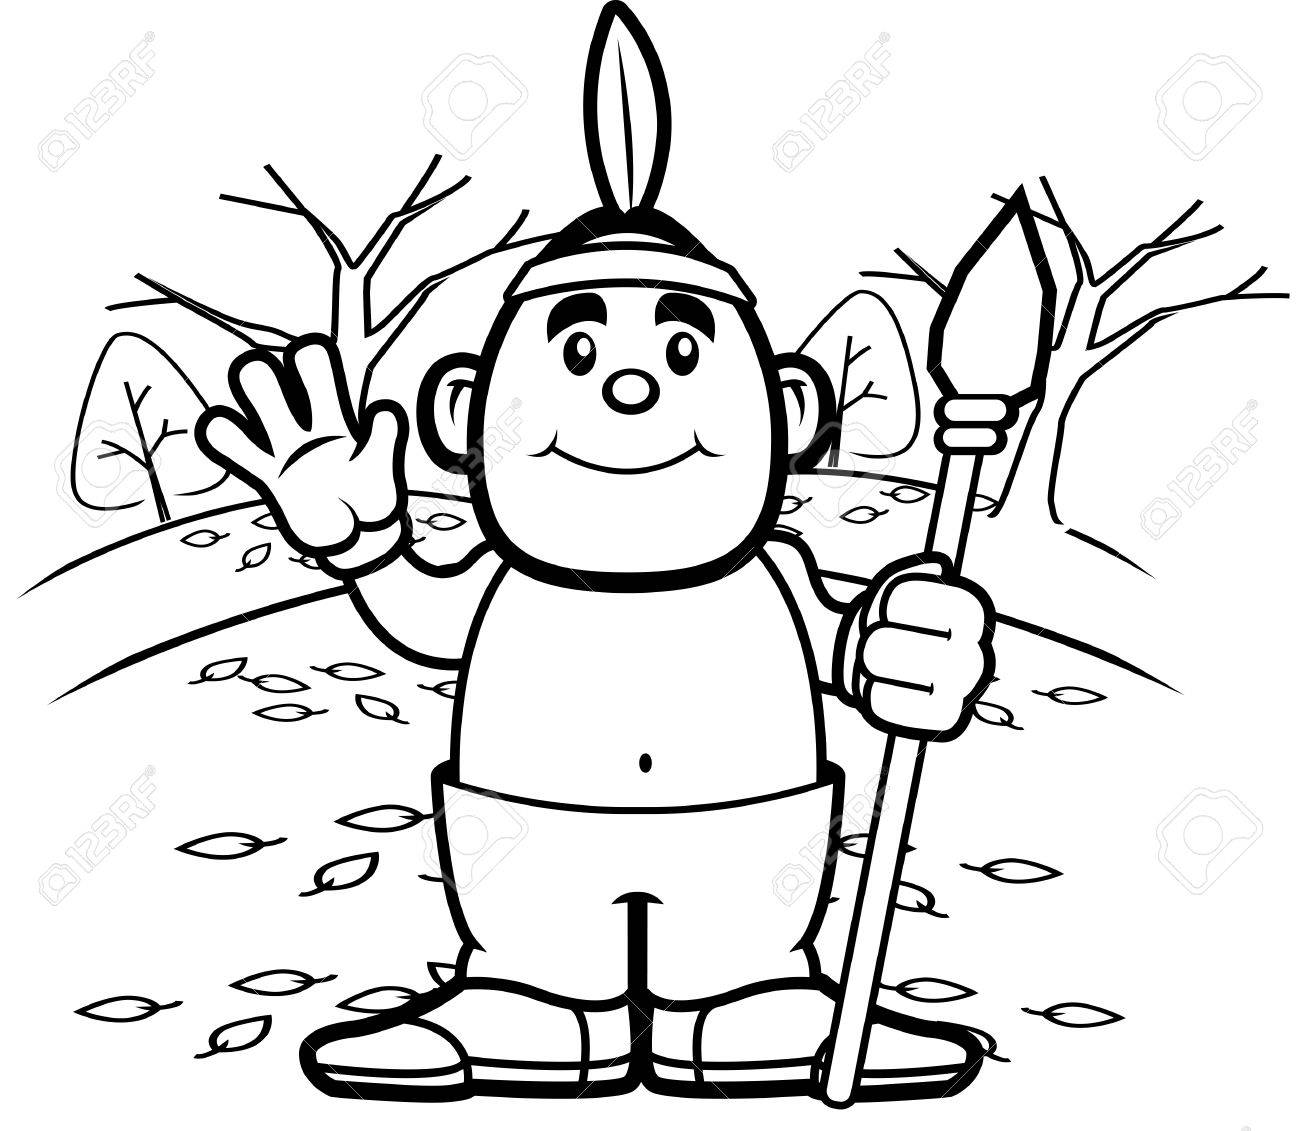 1300x1131 A Happy Cartoon Native American Waving And Smiling. Royalty Free